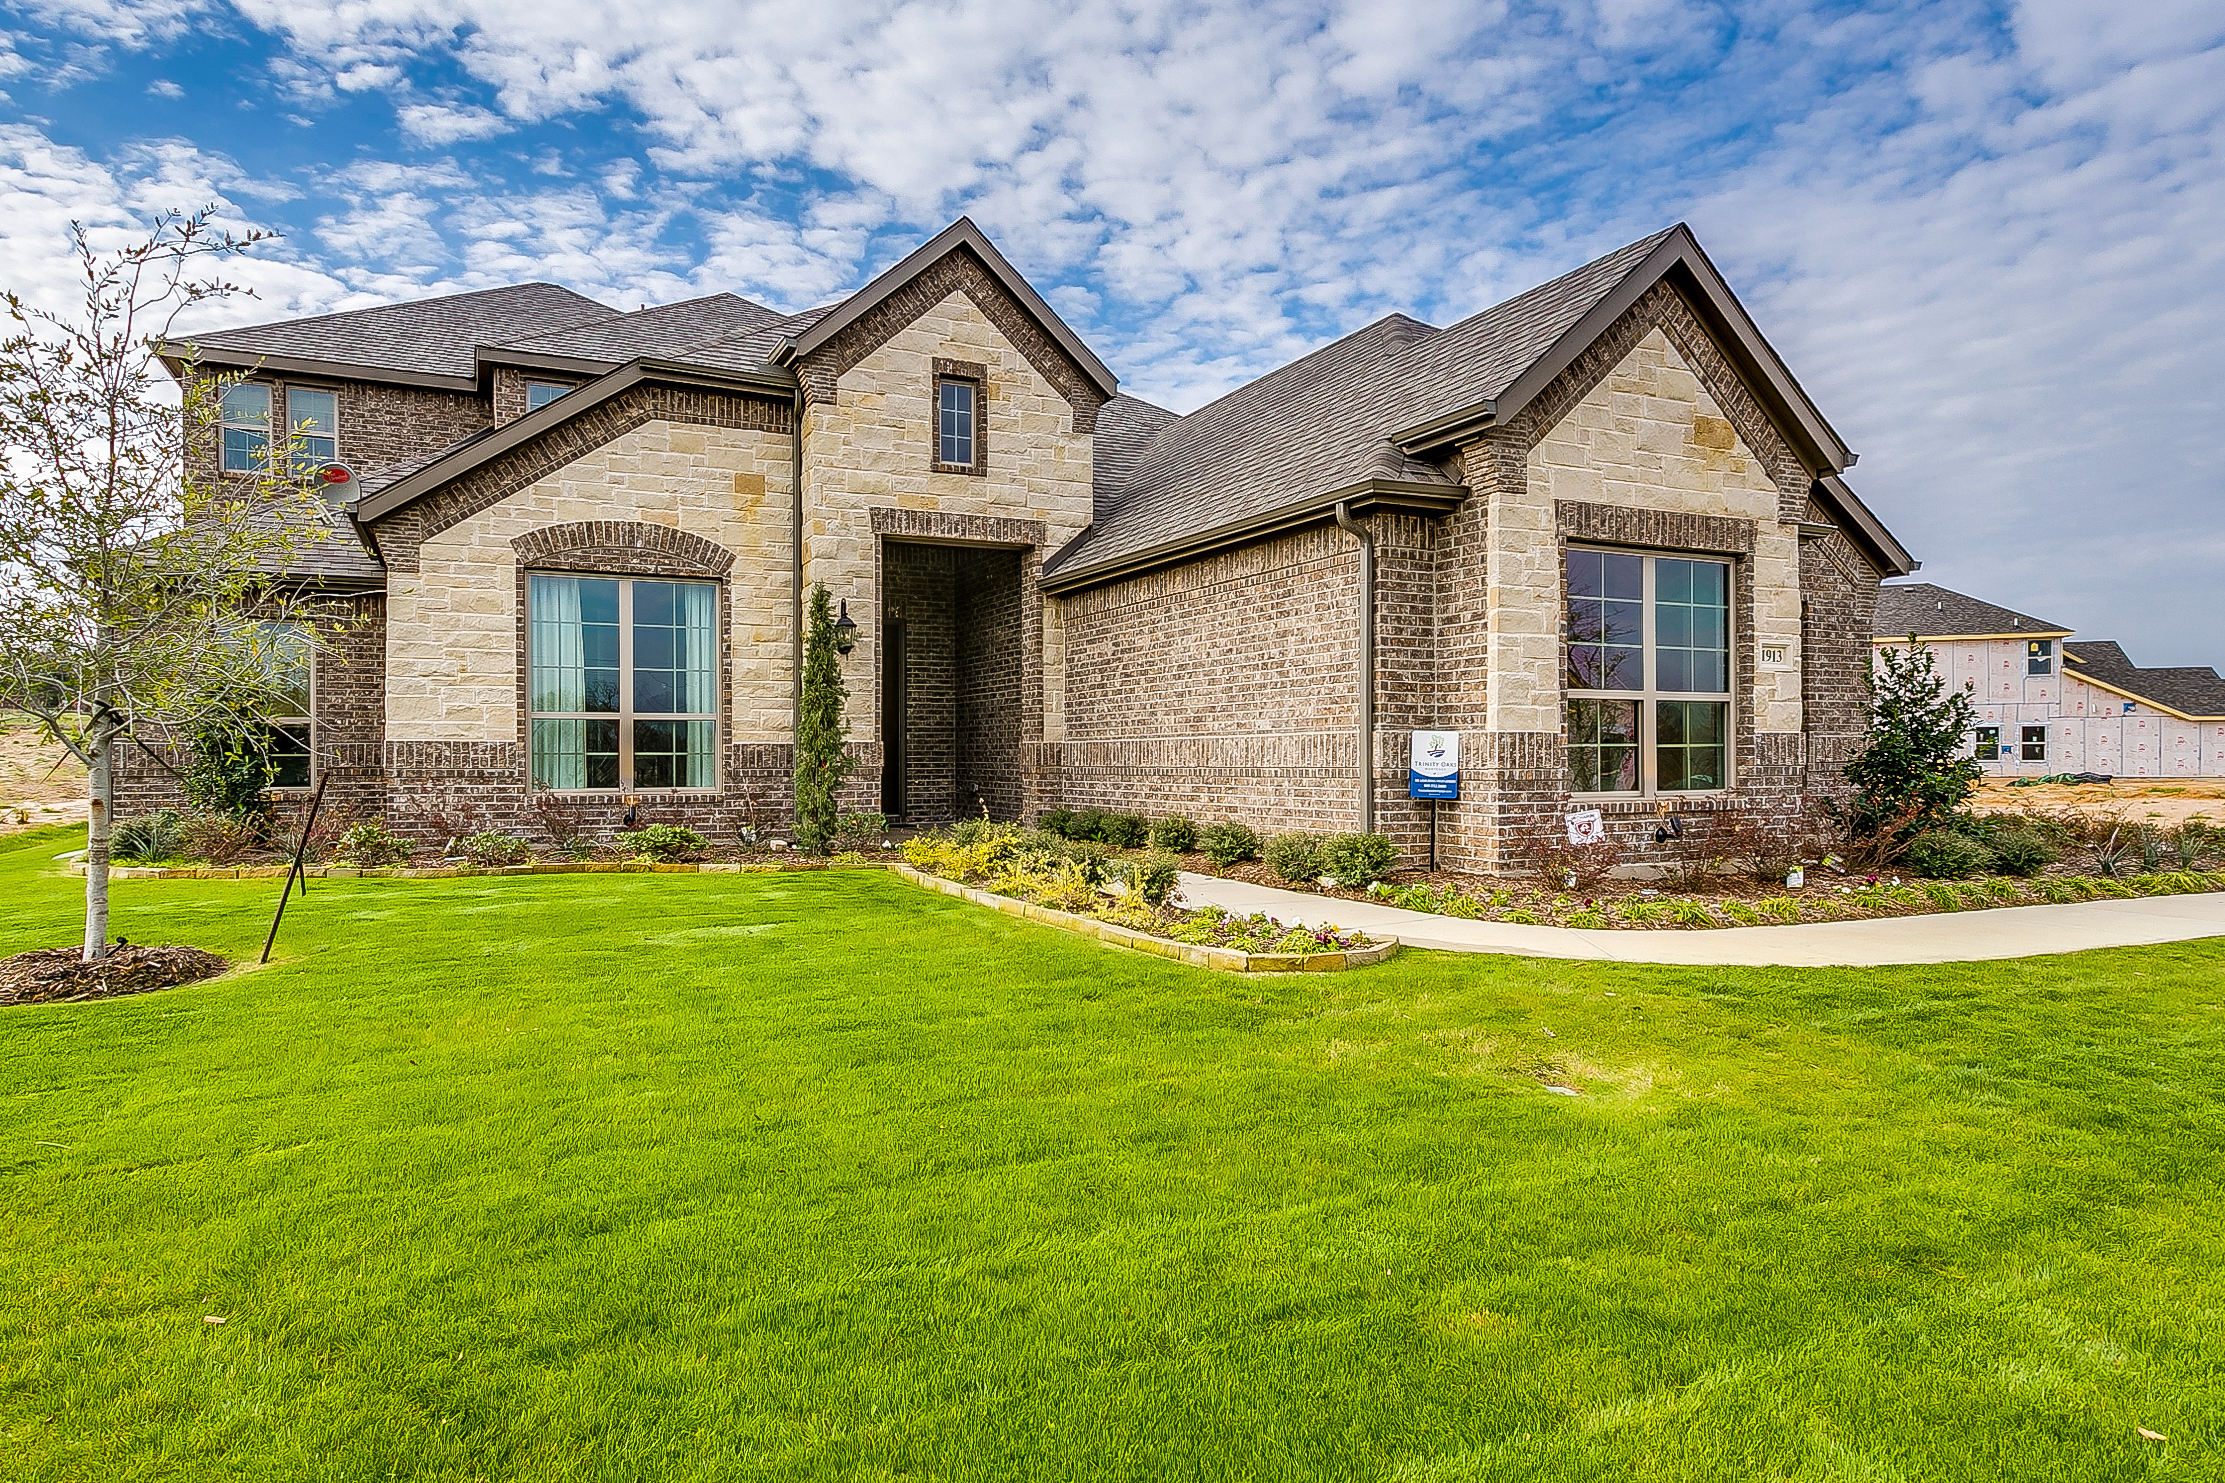 1913 Silver Falls - New Home for Sale in Burleson - 3